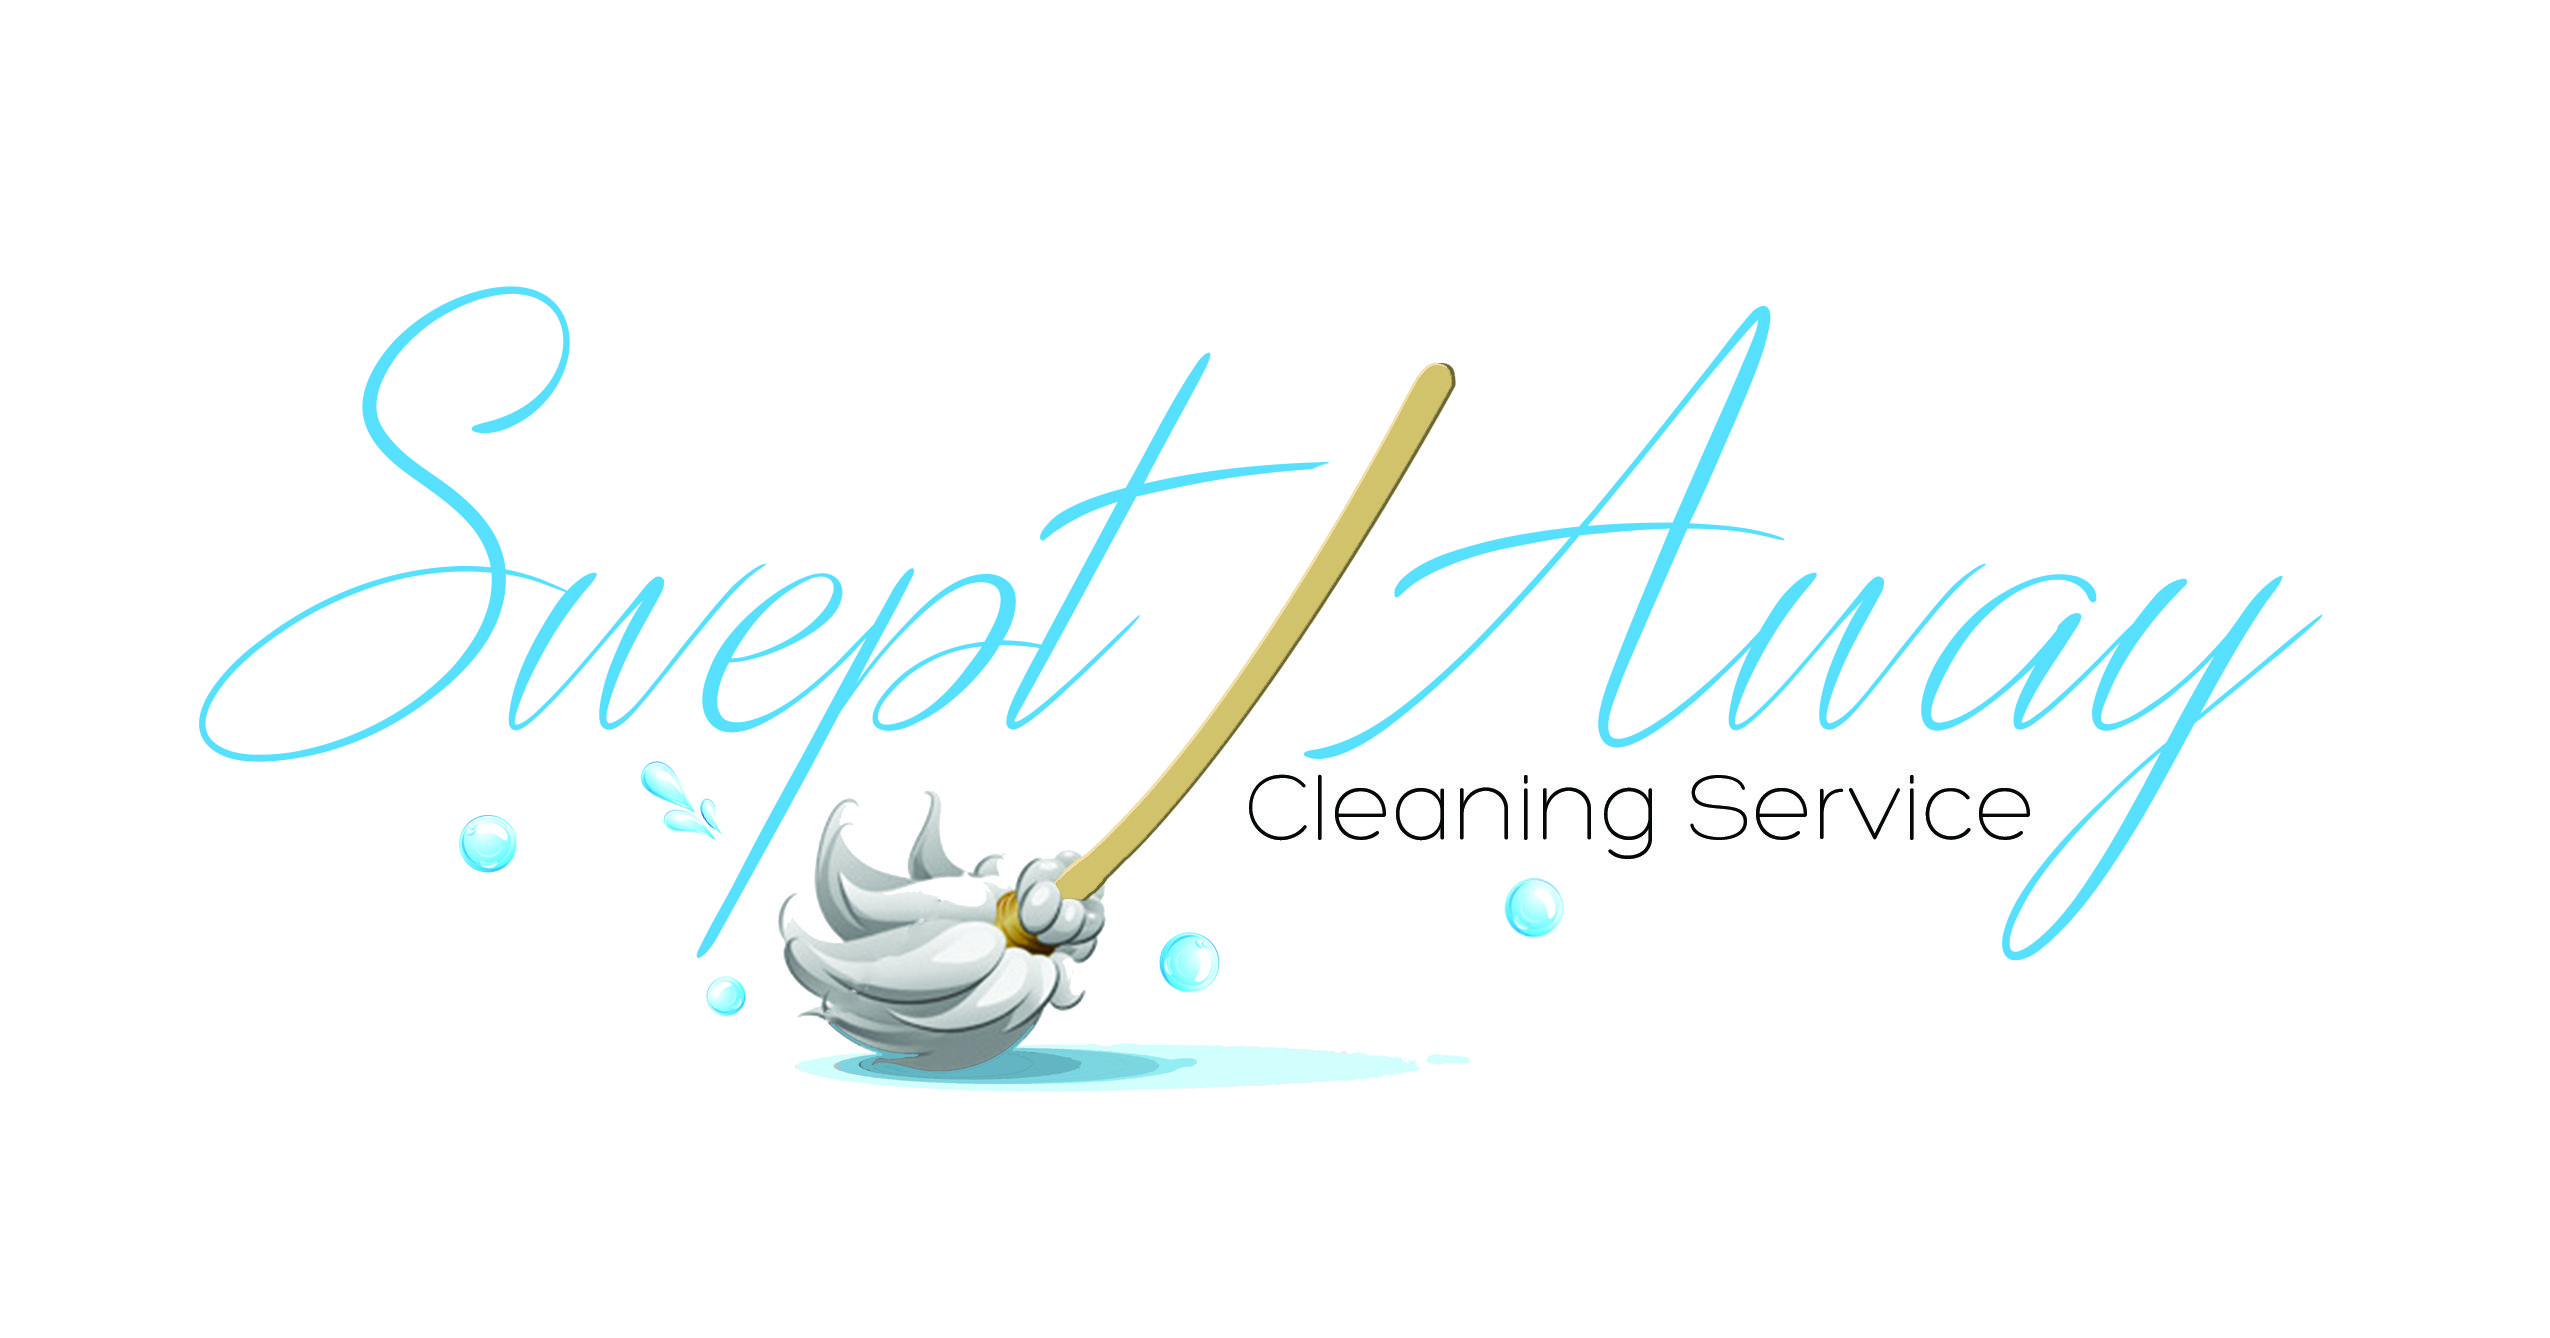 Cleaning Service Logo Design by Dreamhouse Marketing.